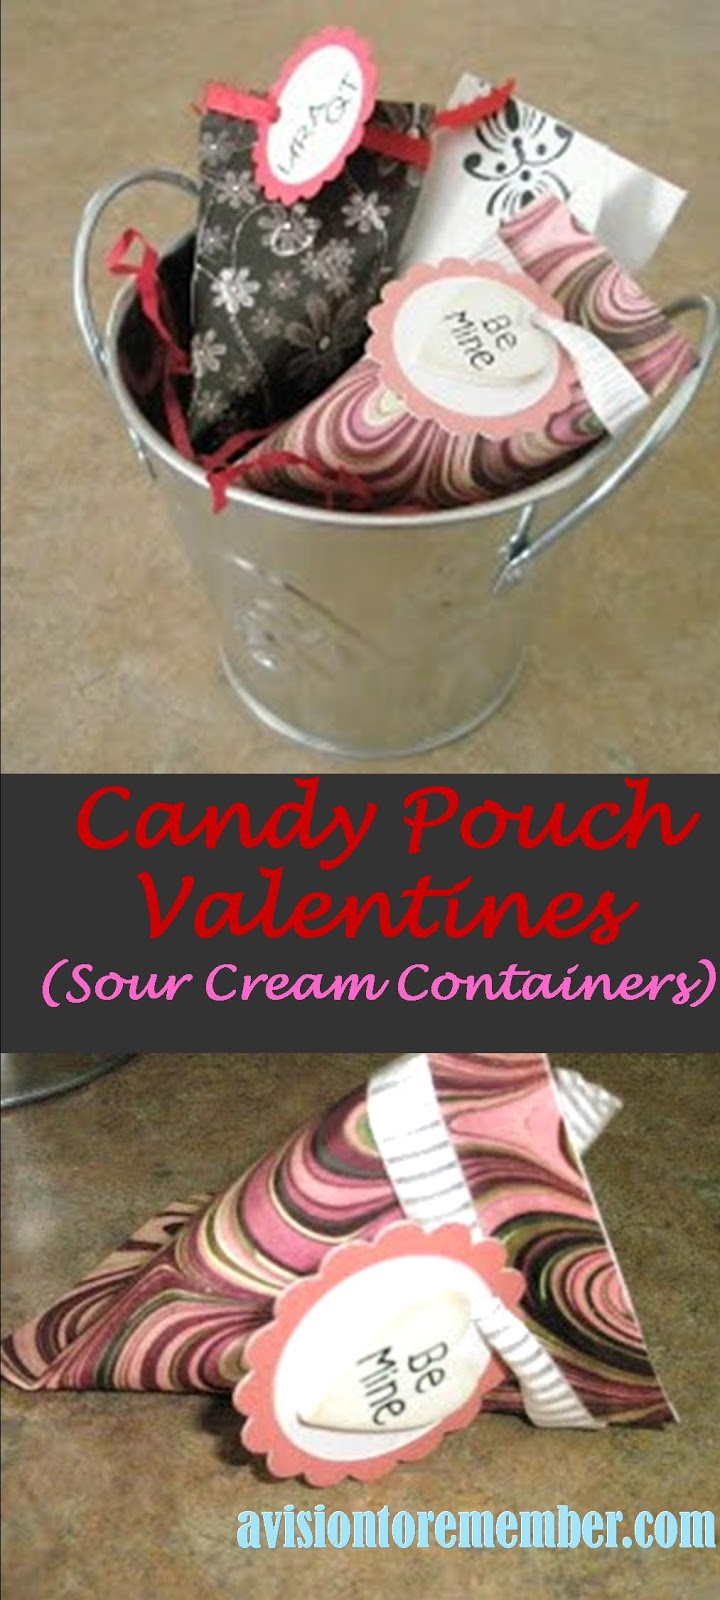 Sour Cream Container Valentines